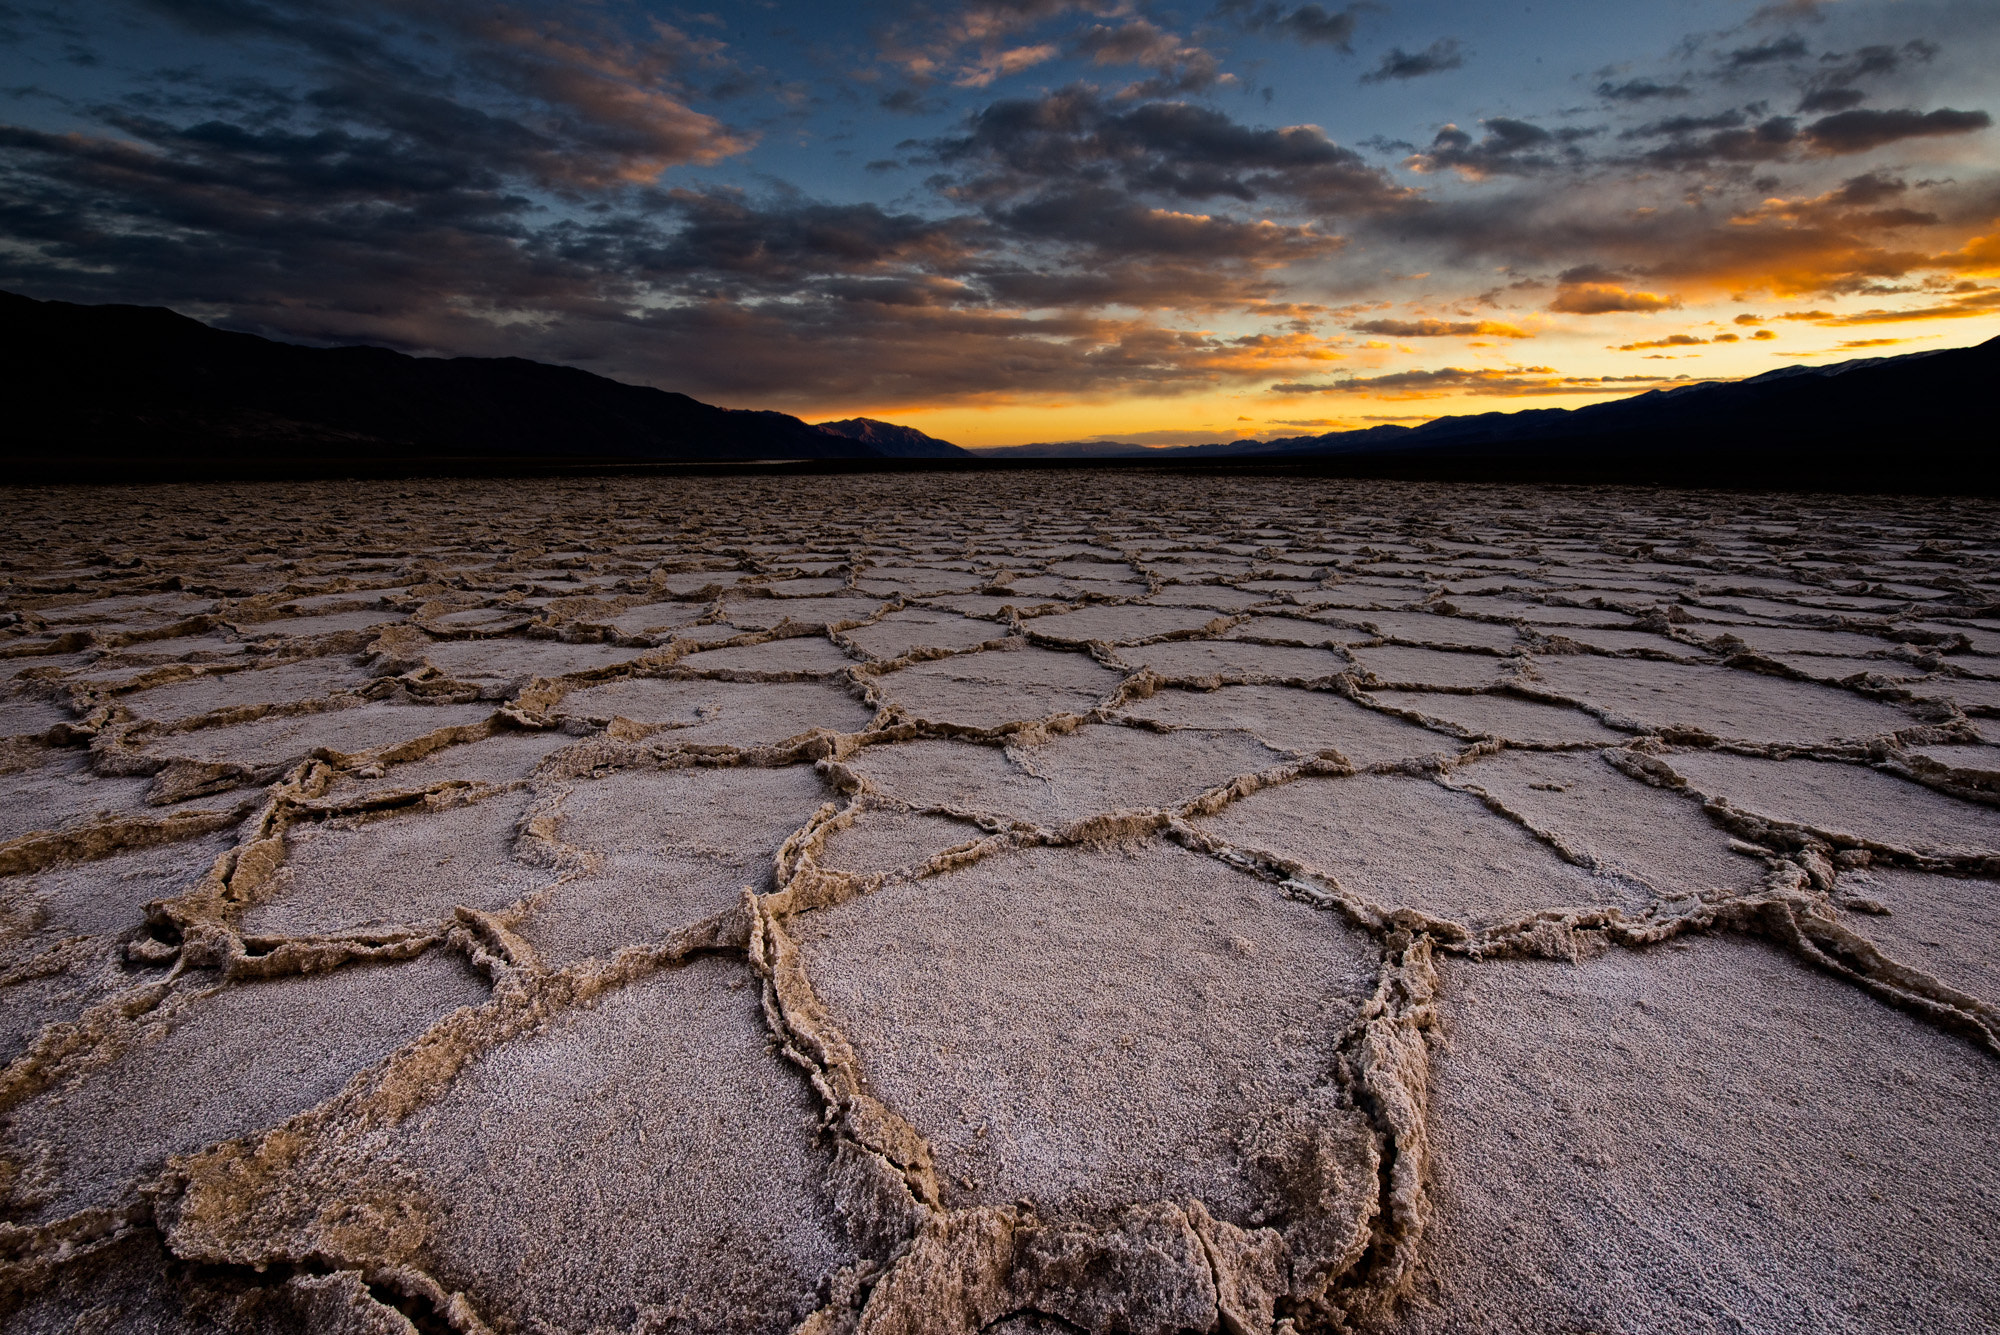 Photograph Badwater Sunset by Brian Bonham on 500px